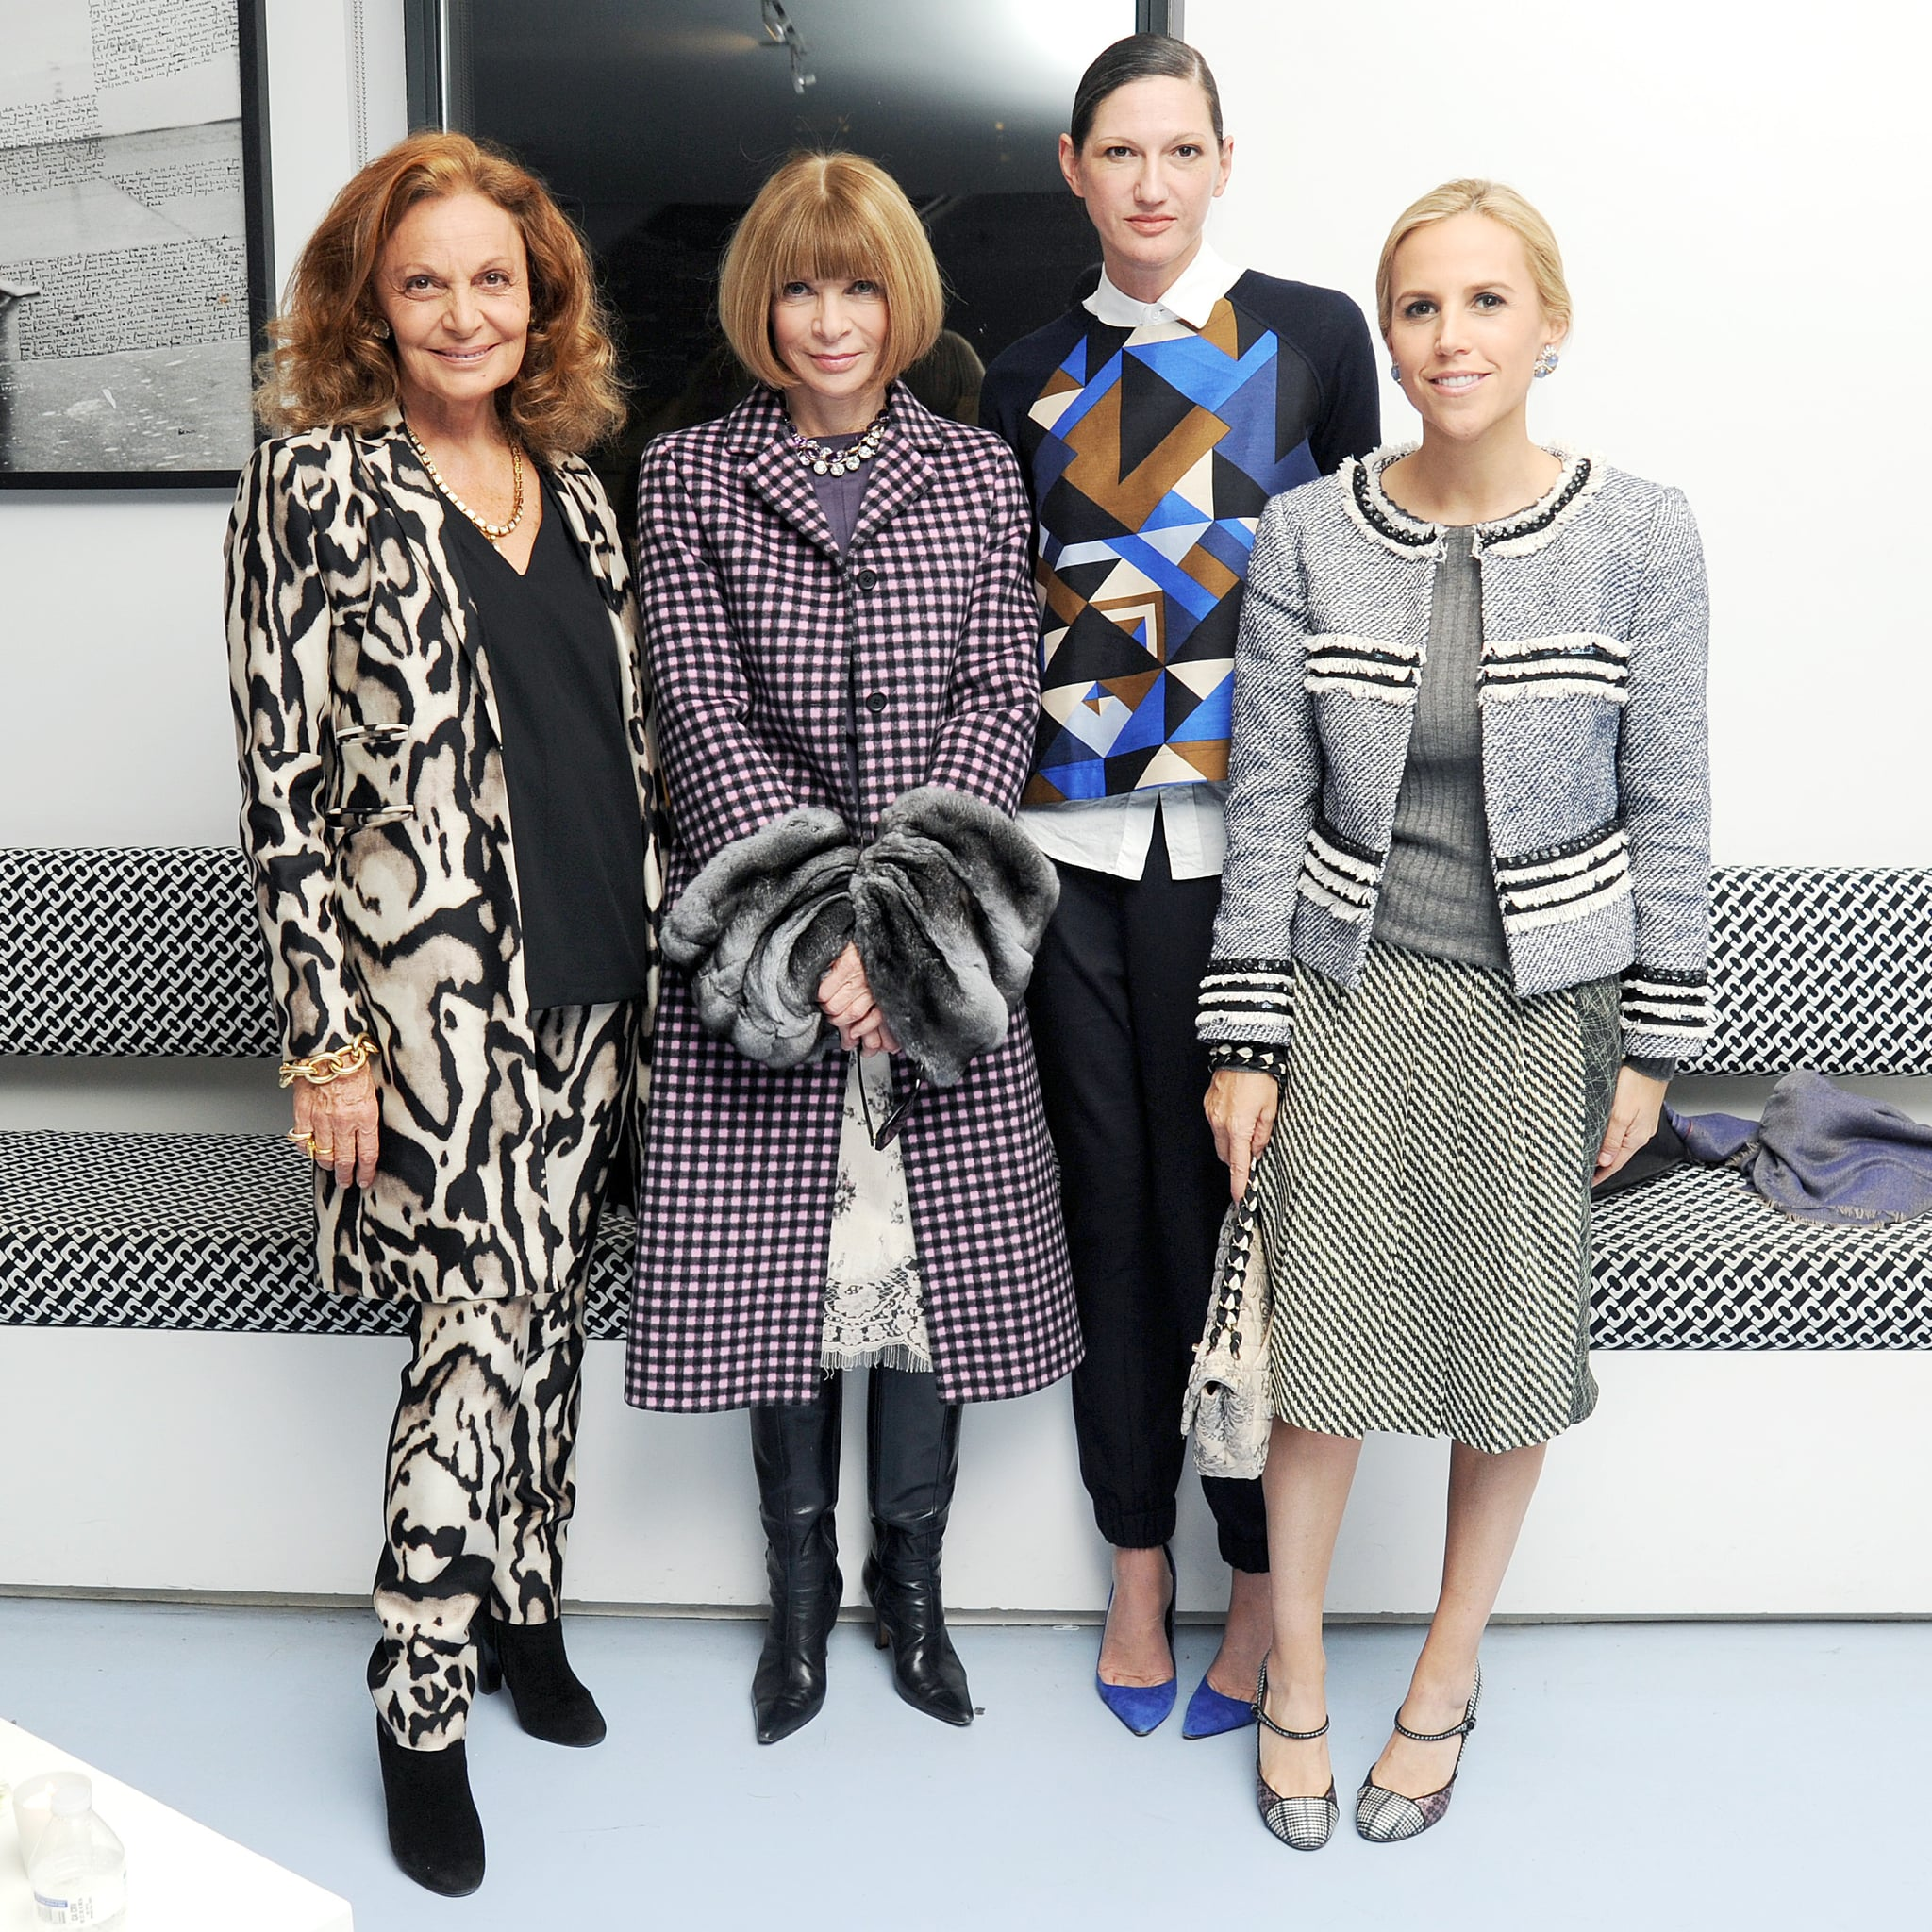 Diane von Furstenberg, Anna Wintour, Jenna Lyons, and Tory Burch at the Bornfree campaign press announcement.